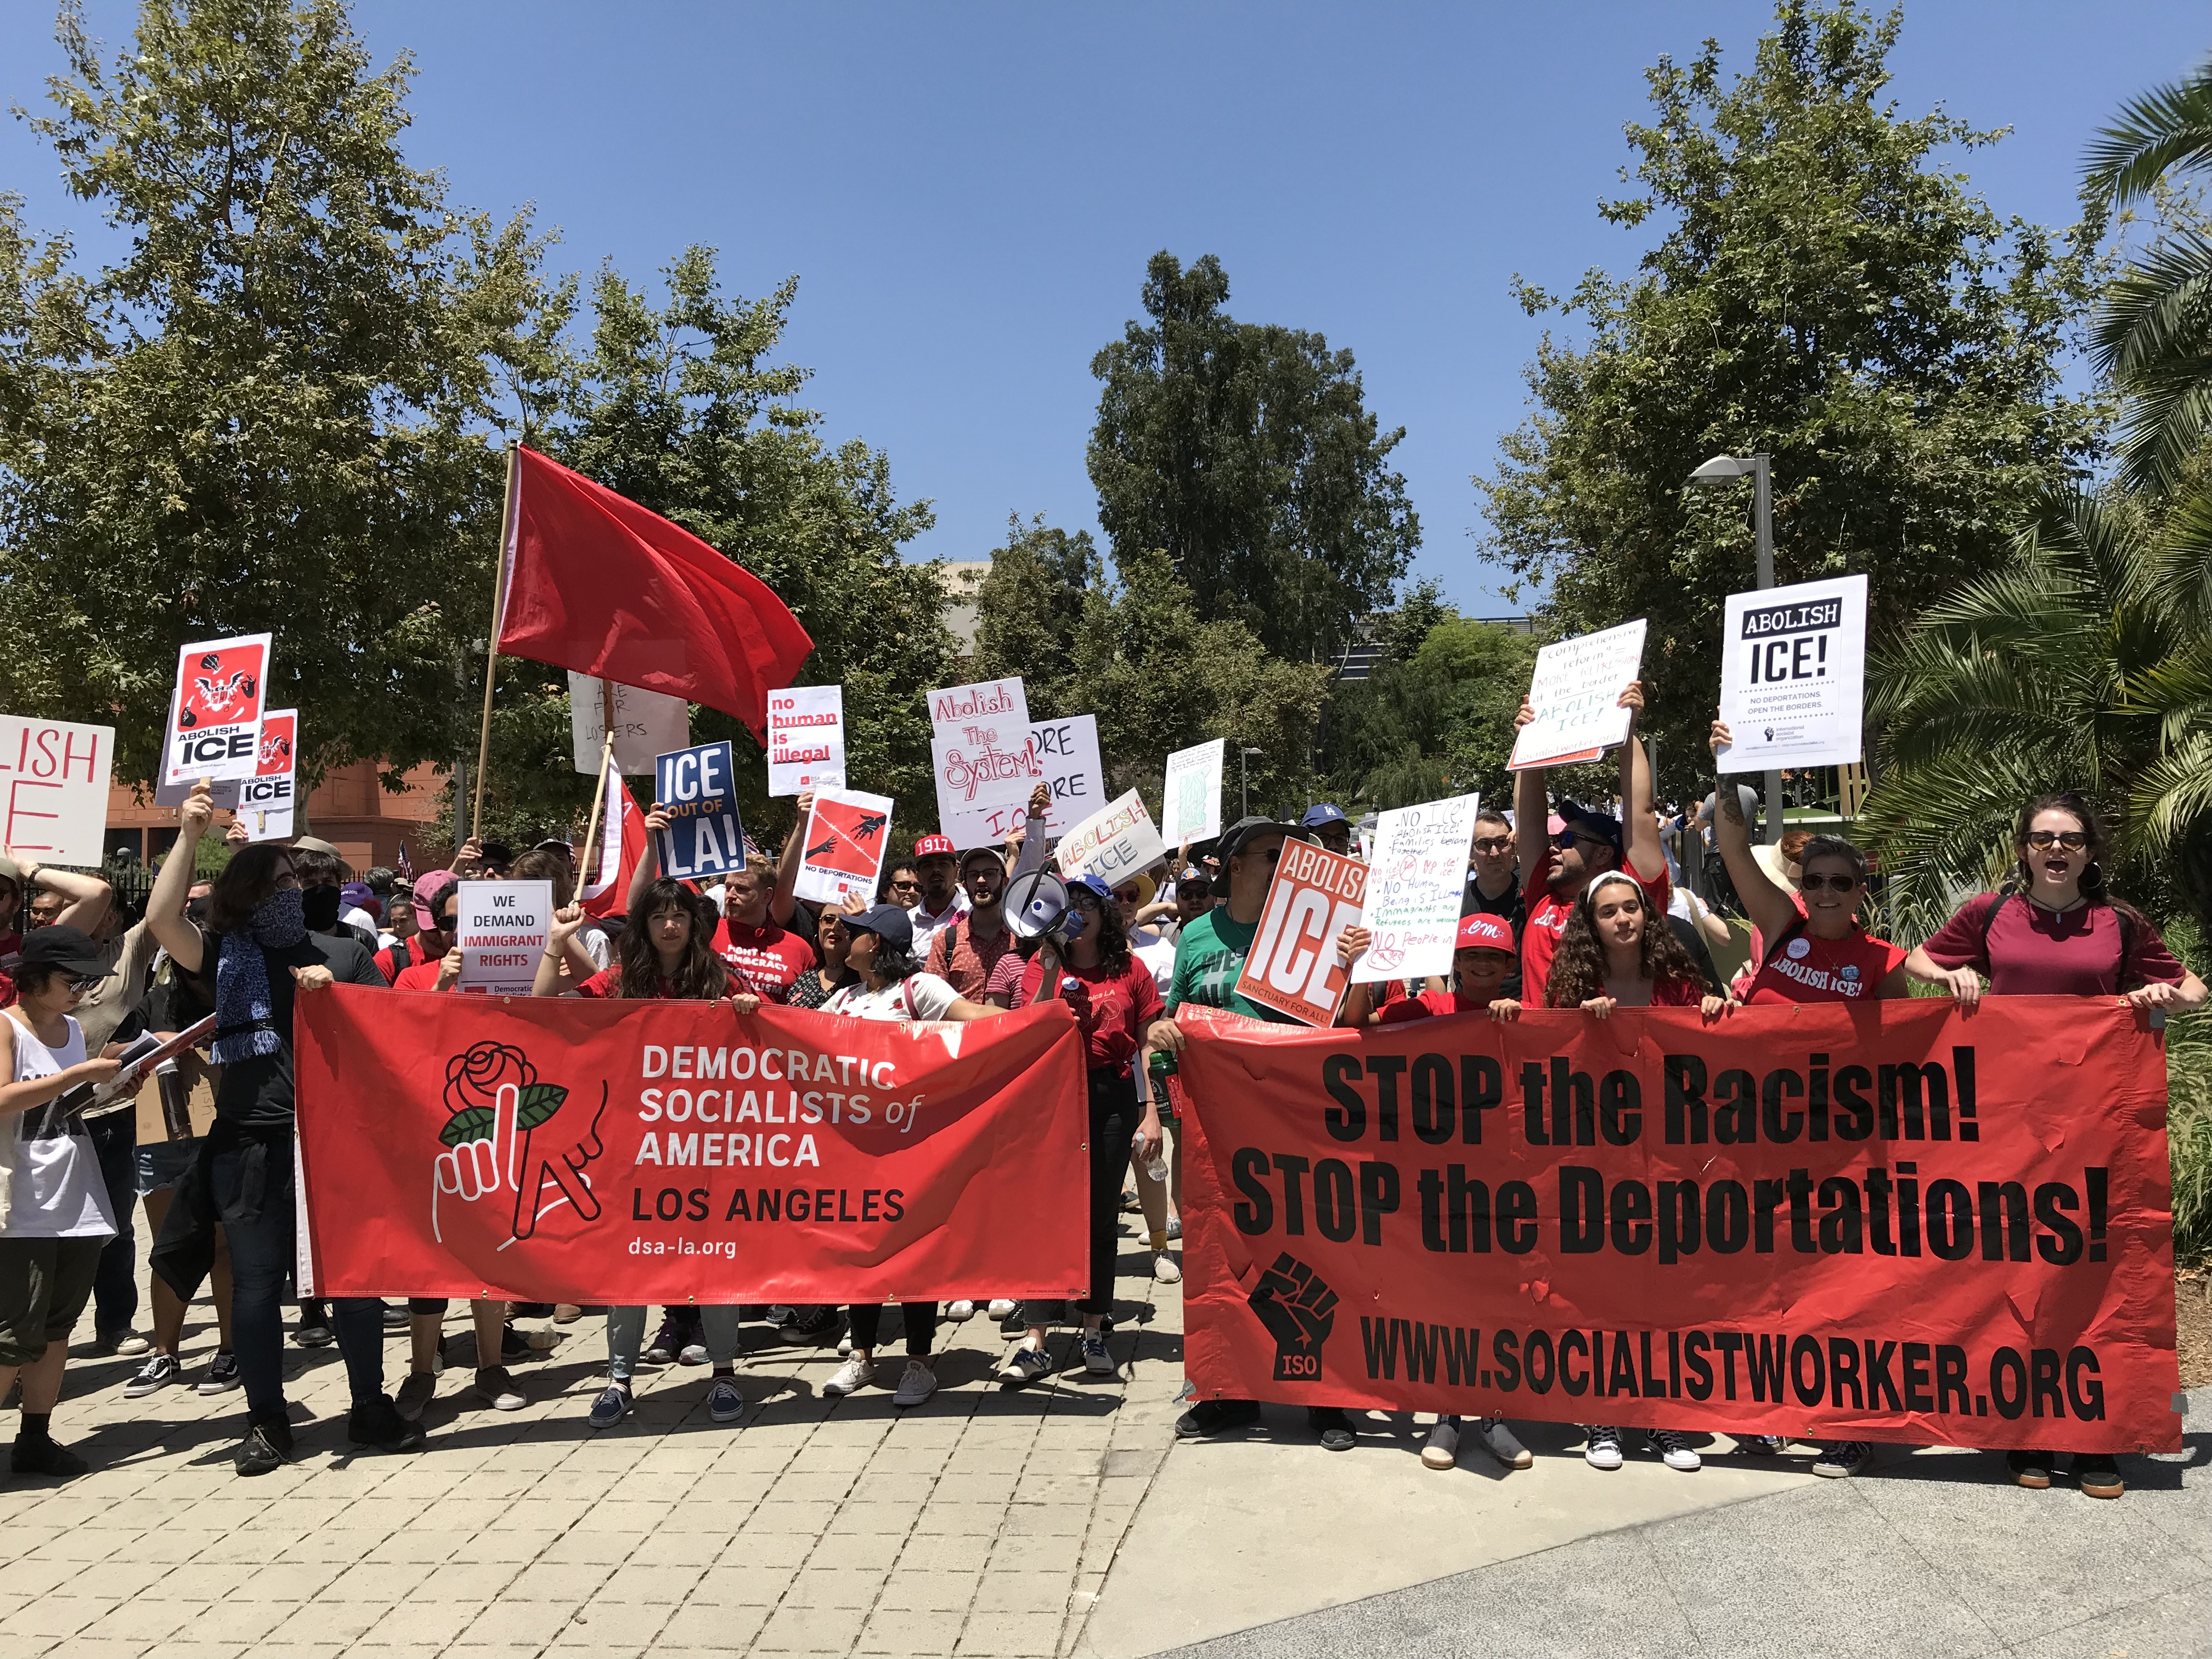 DSA Los Angeles joined several leftist groups from across Los Angeles to demand an end to ICE and the complicity of LAPD and Mayor Eric Garcetti in allowing ICE to terrorize our communities.